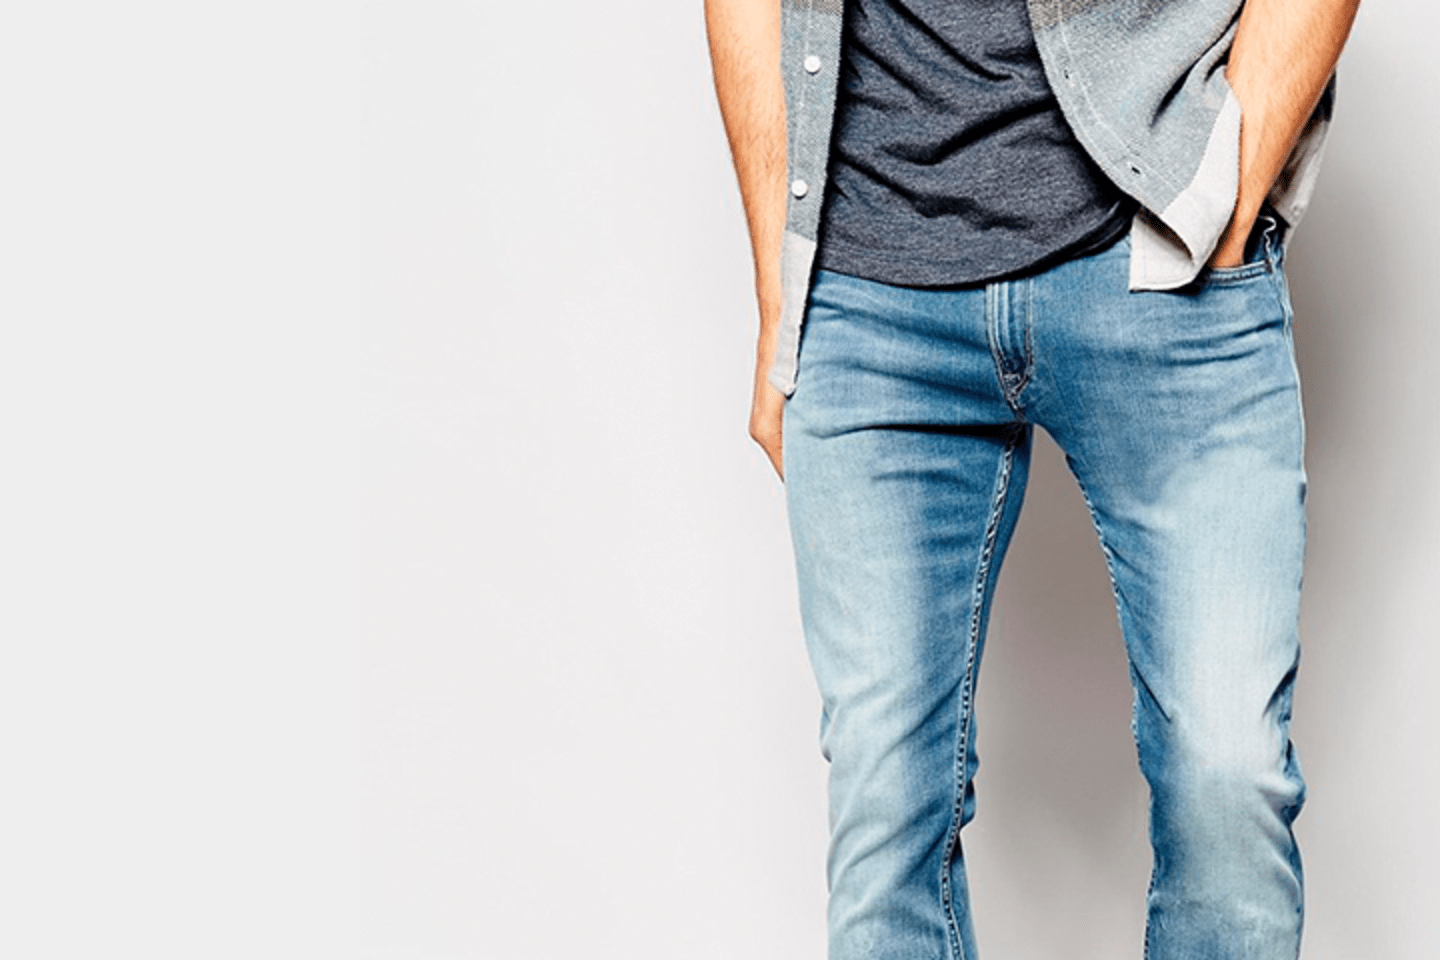 Discover men's jeans